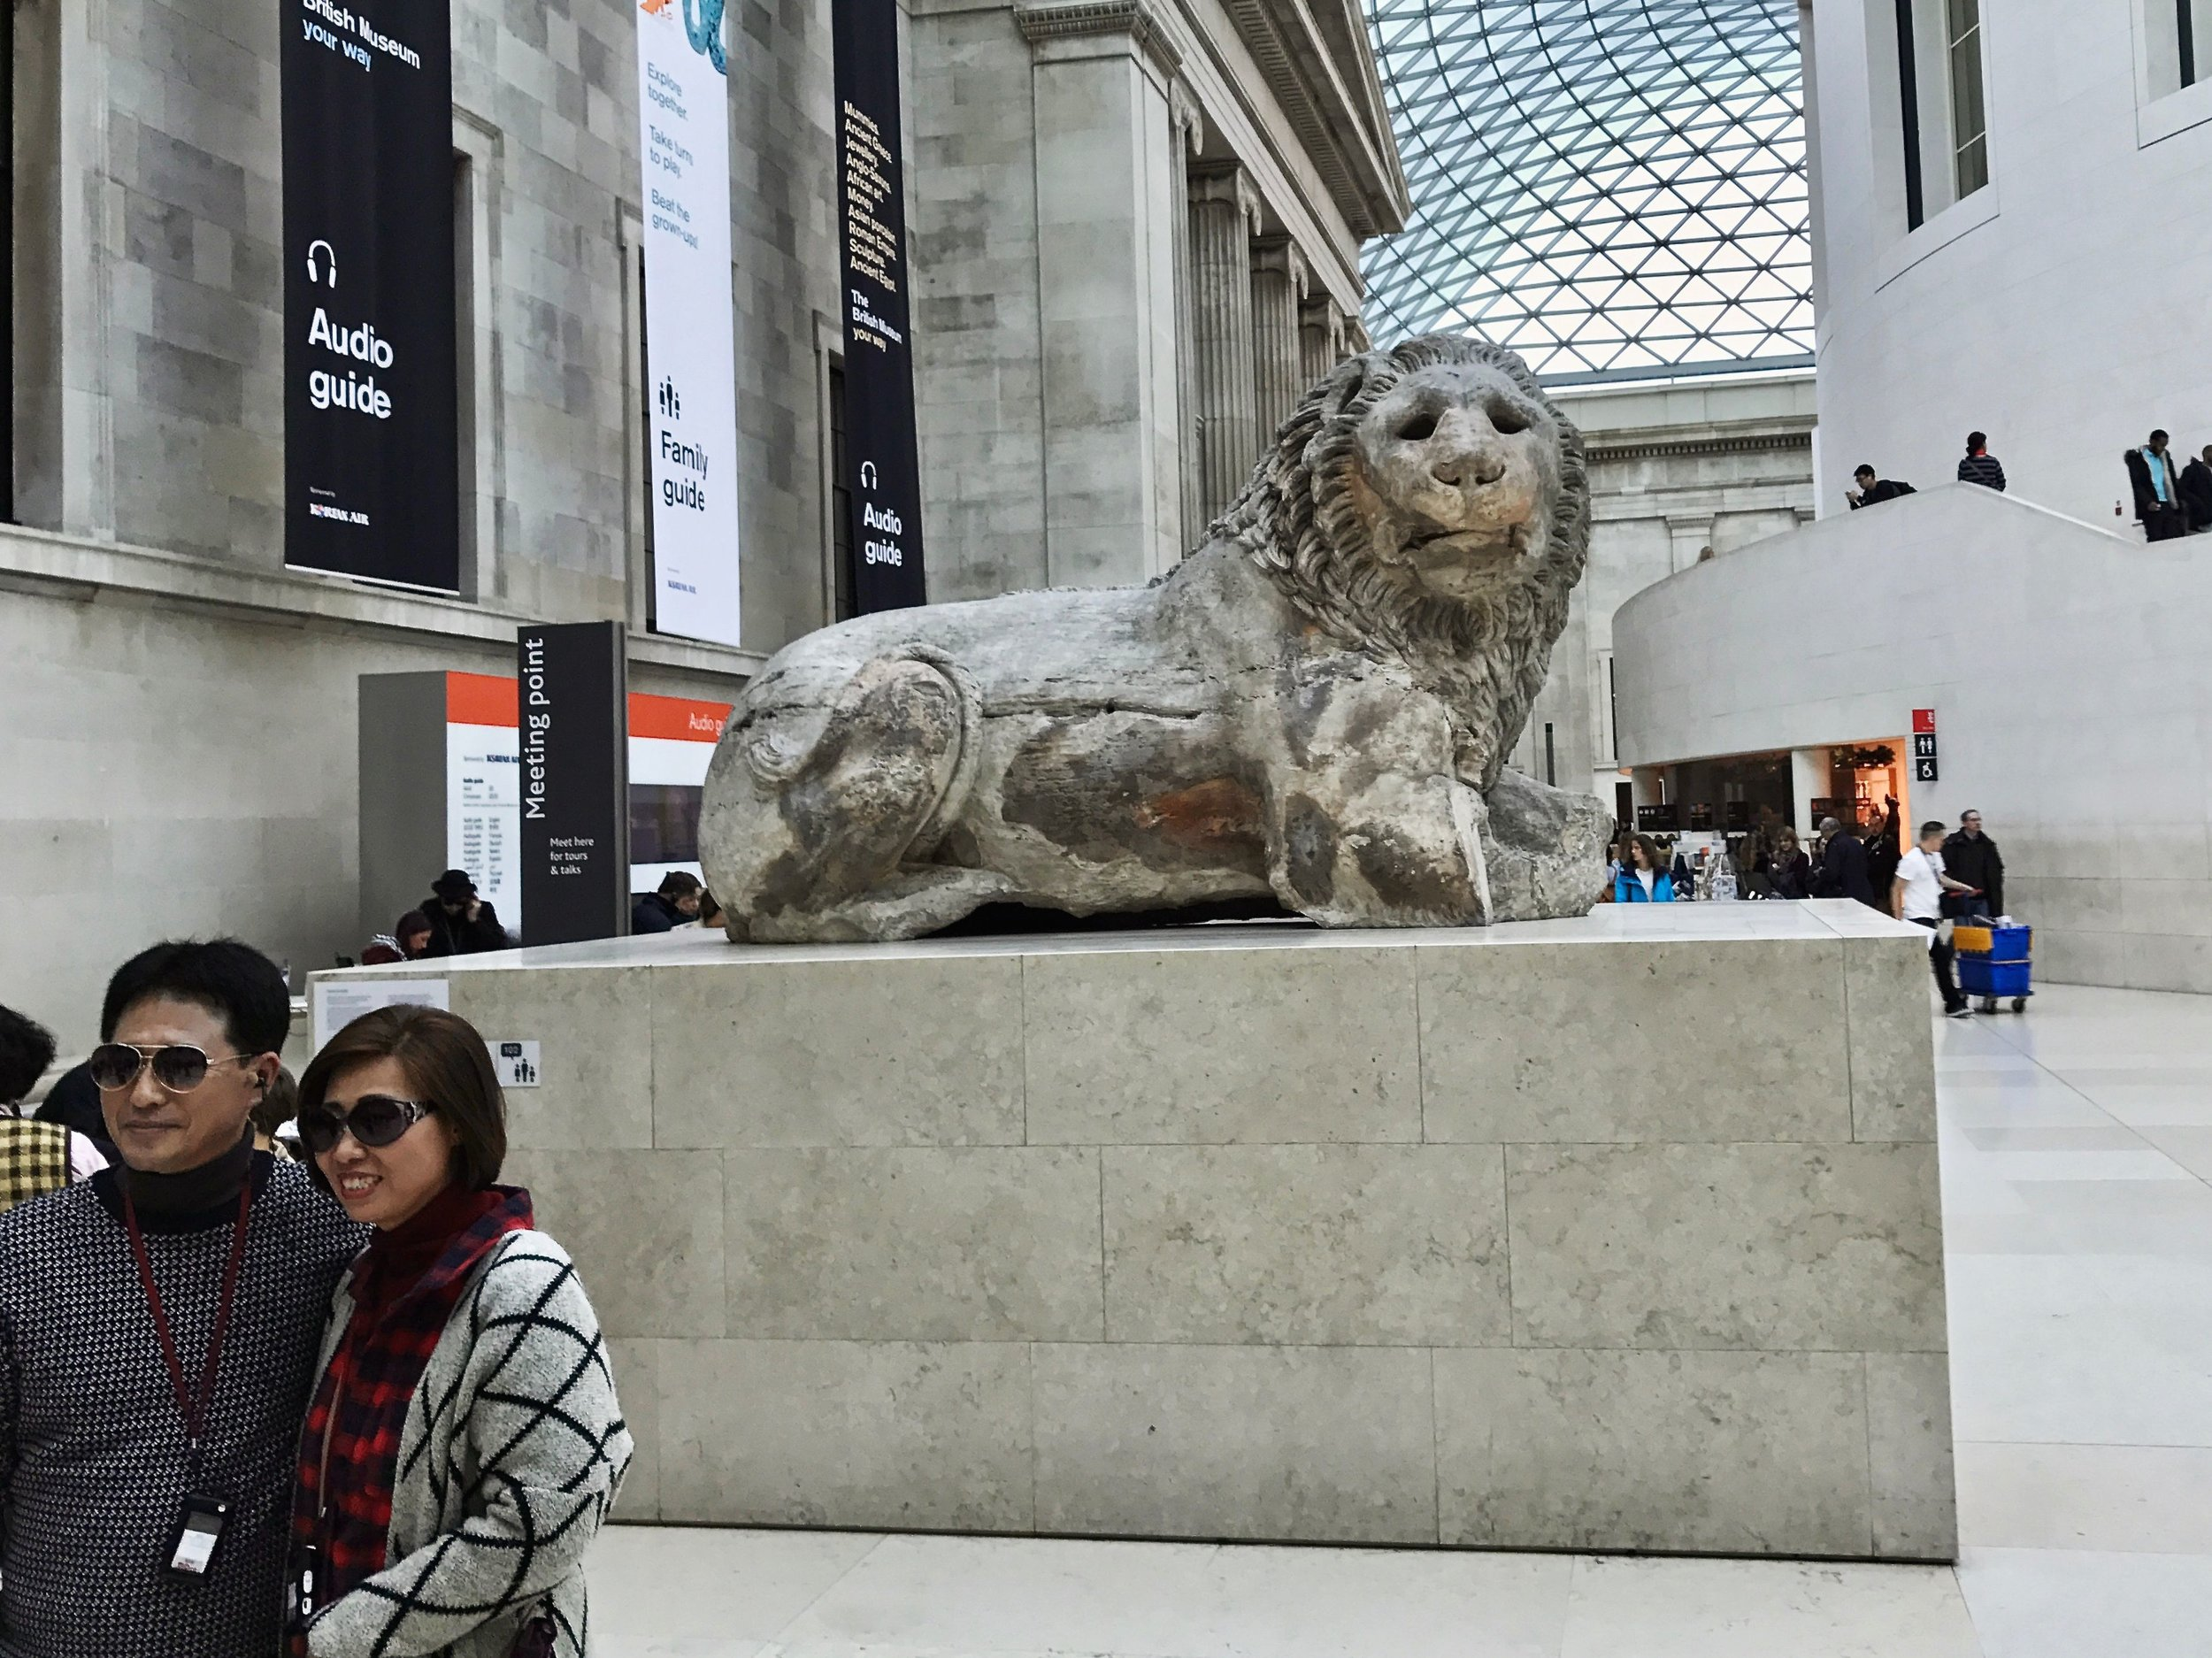 The Lion of Knidos in the Great Court of the British Museum